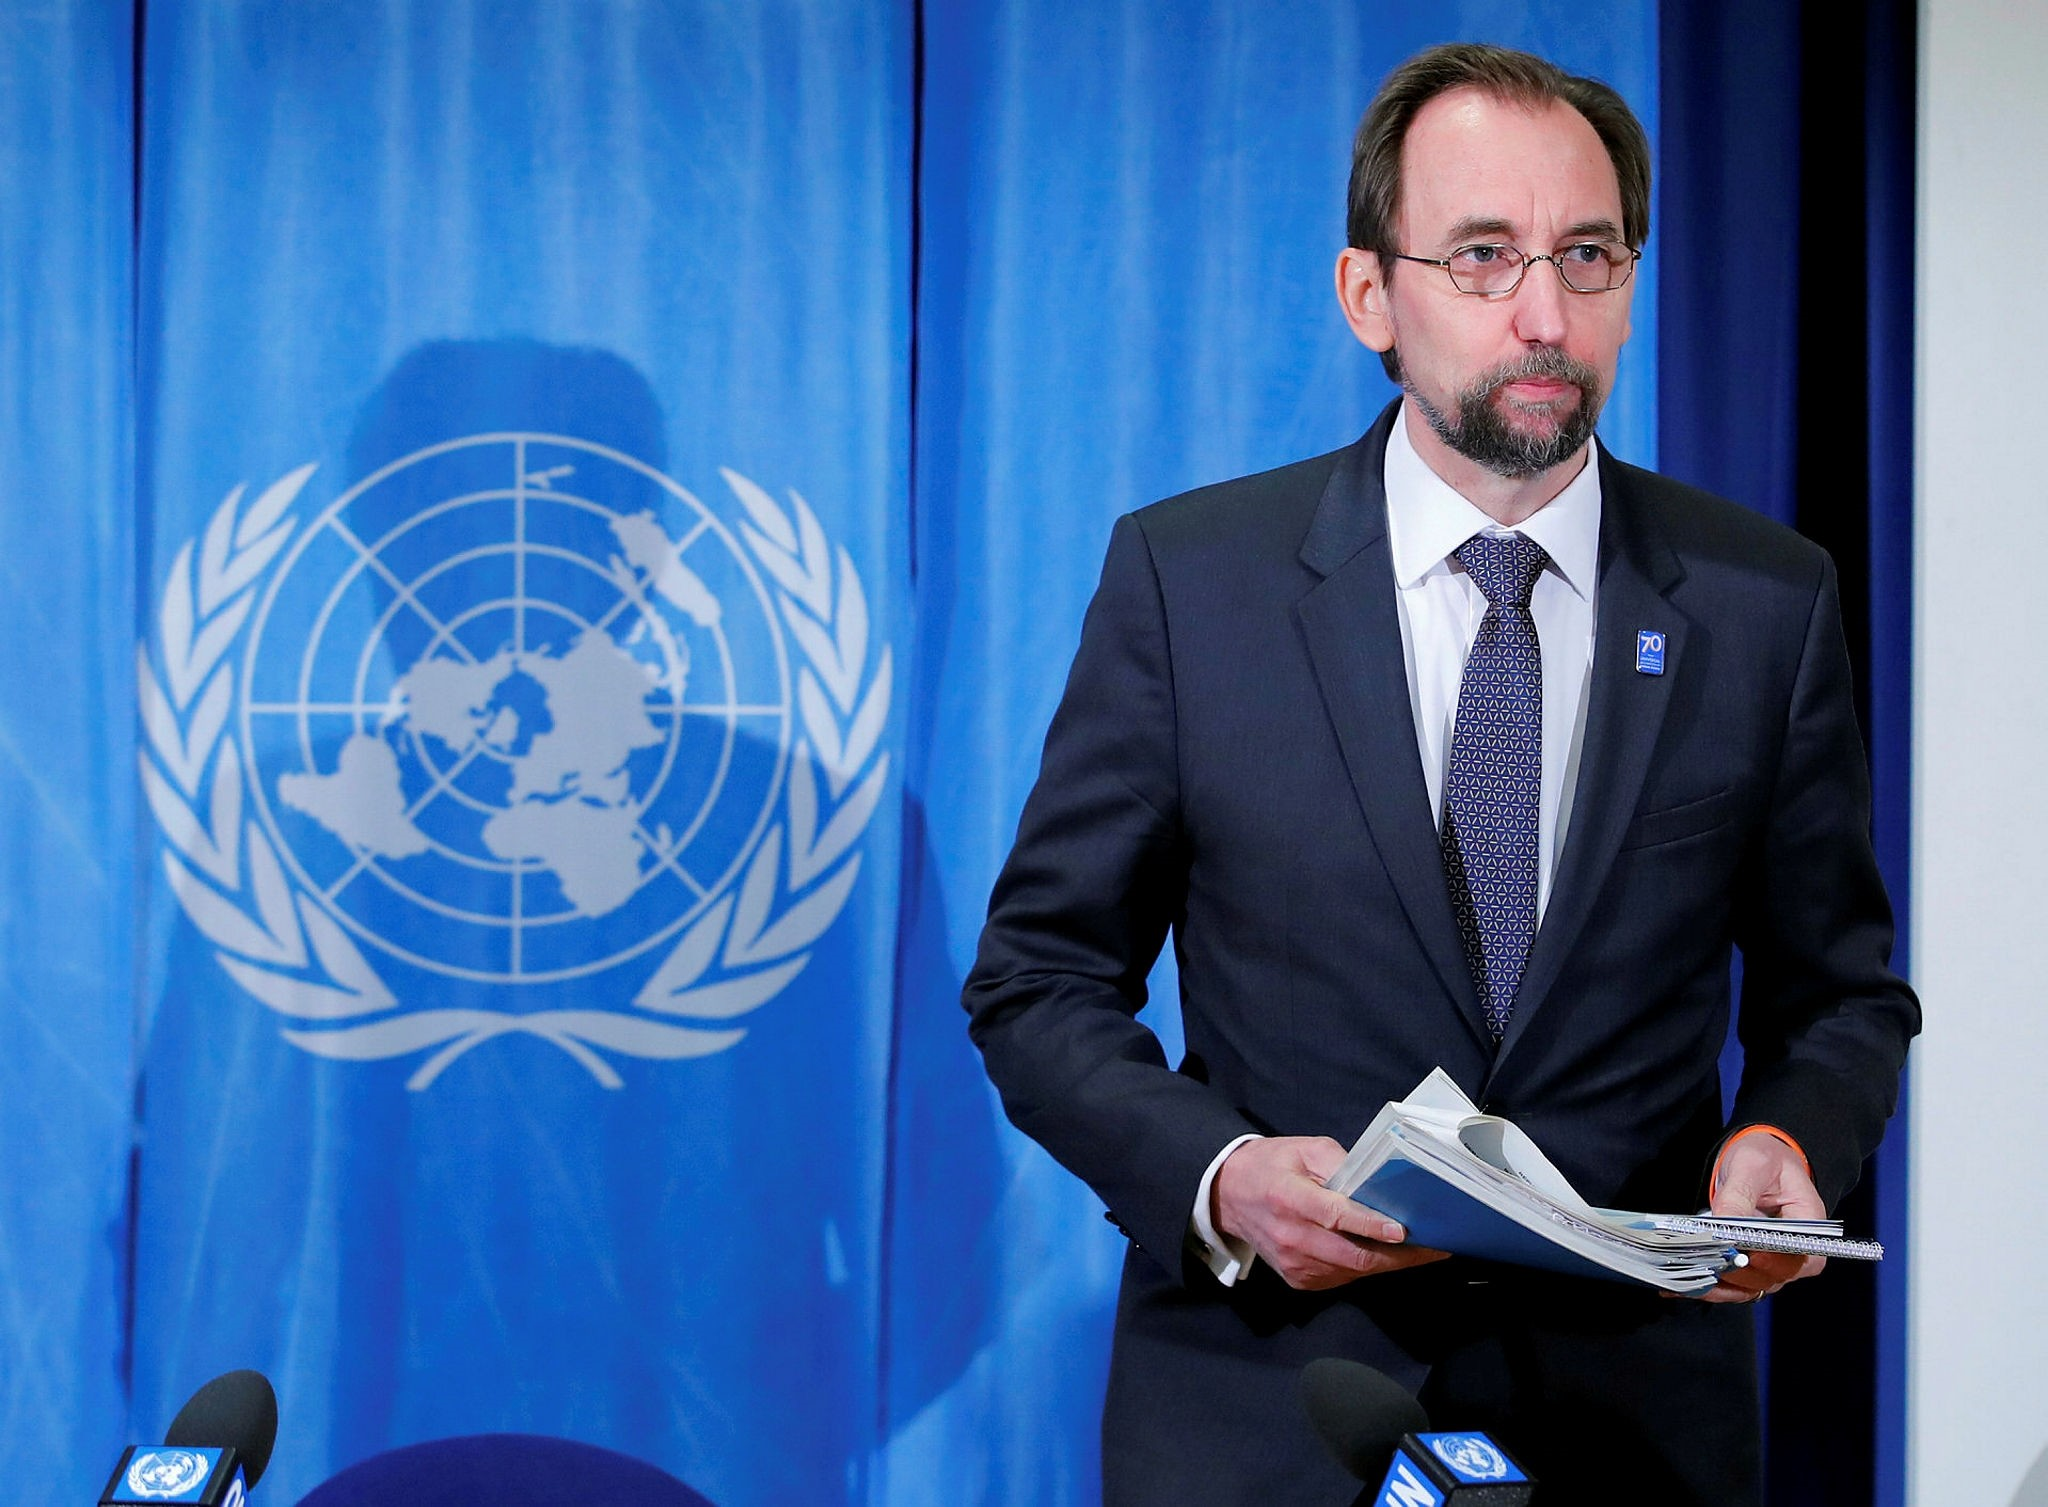 Zeid Ra'ad al-Hussein, U.N. High Commissioner for Human Rights arrives for a news conference at the United Nations in Geneva, March 9.